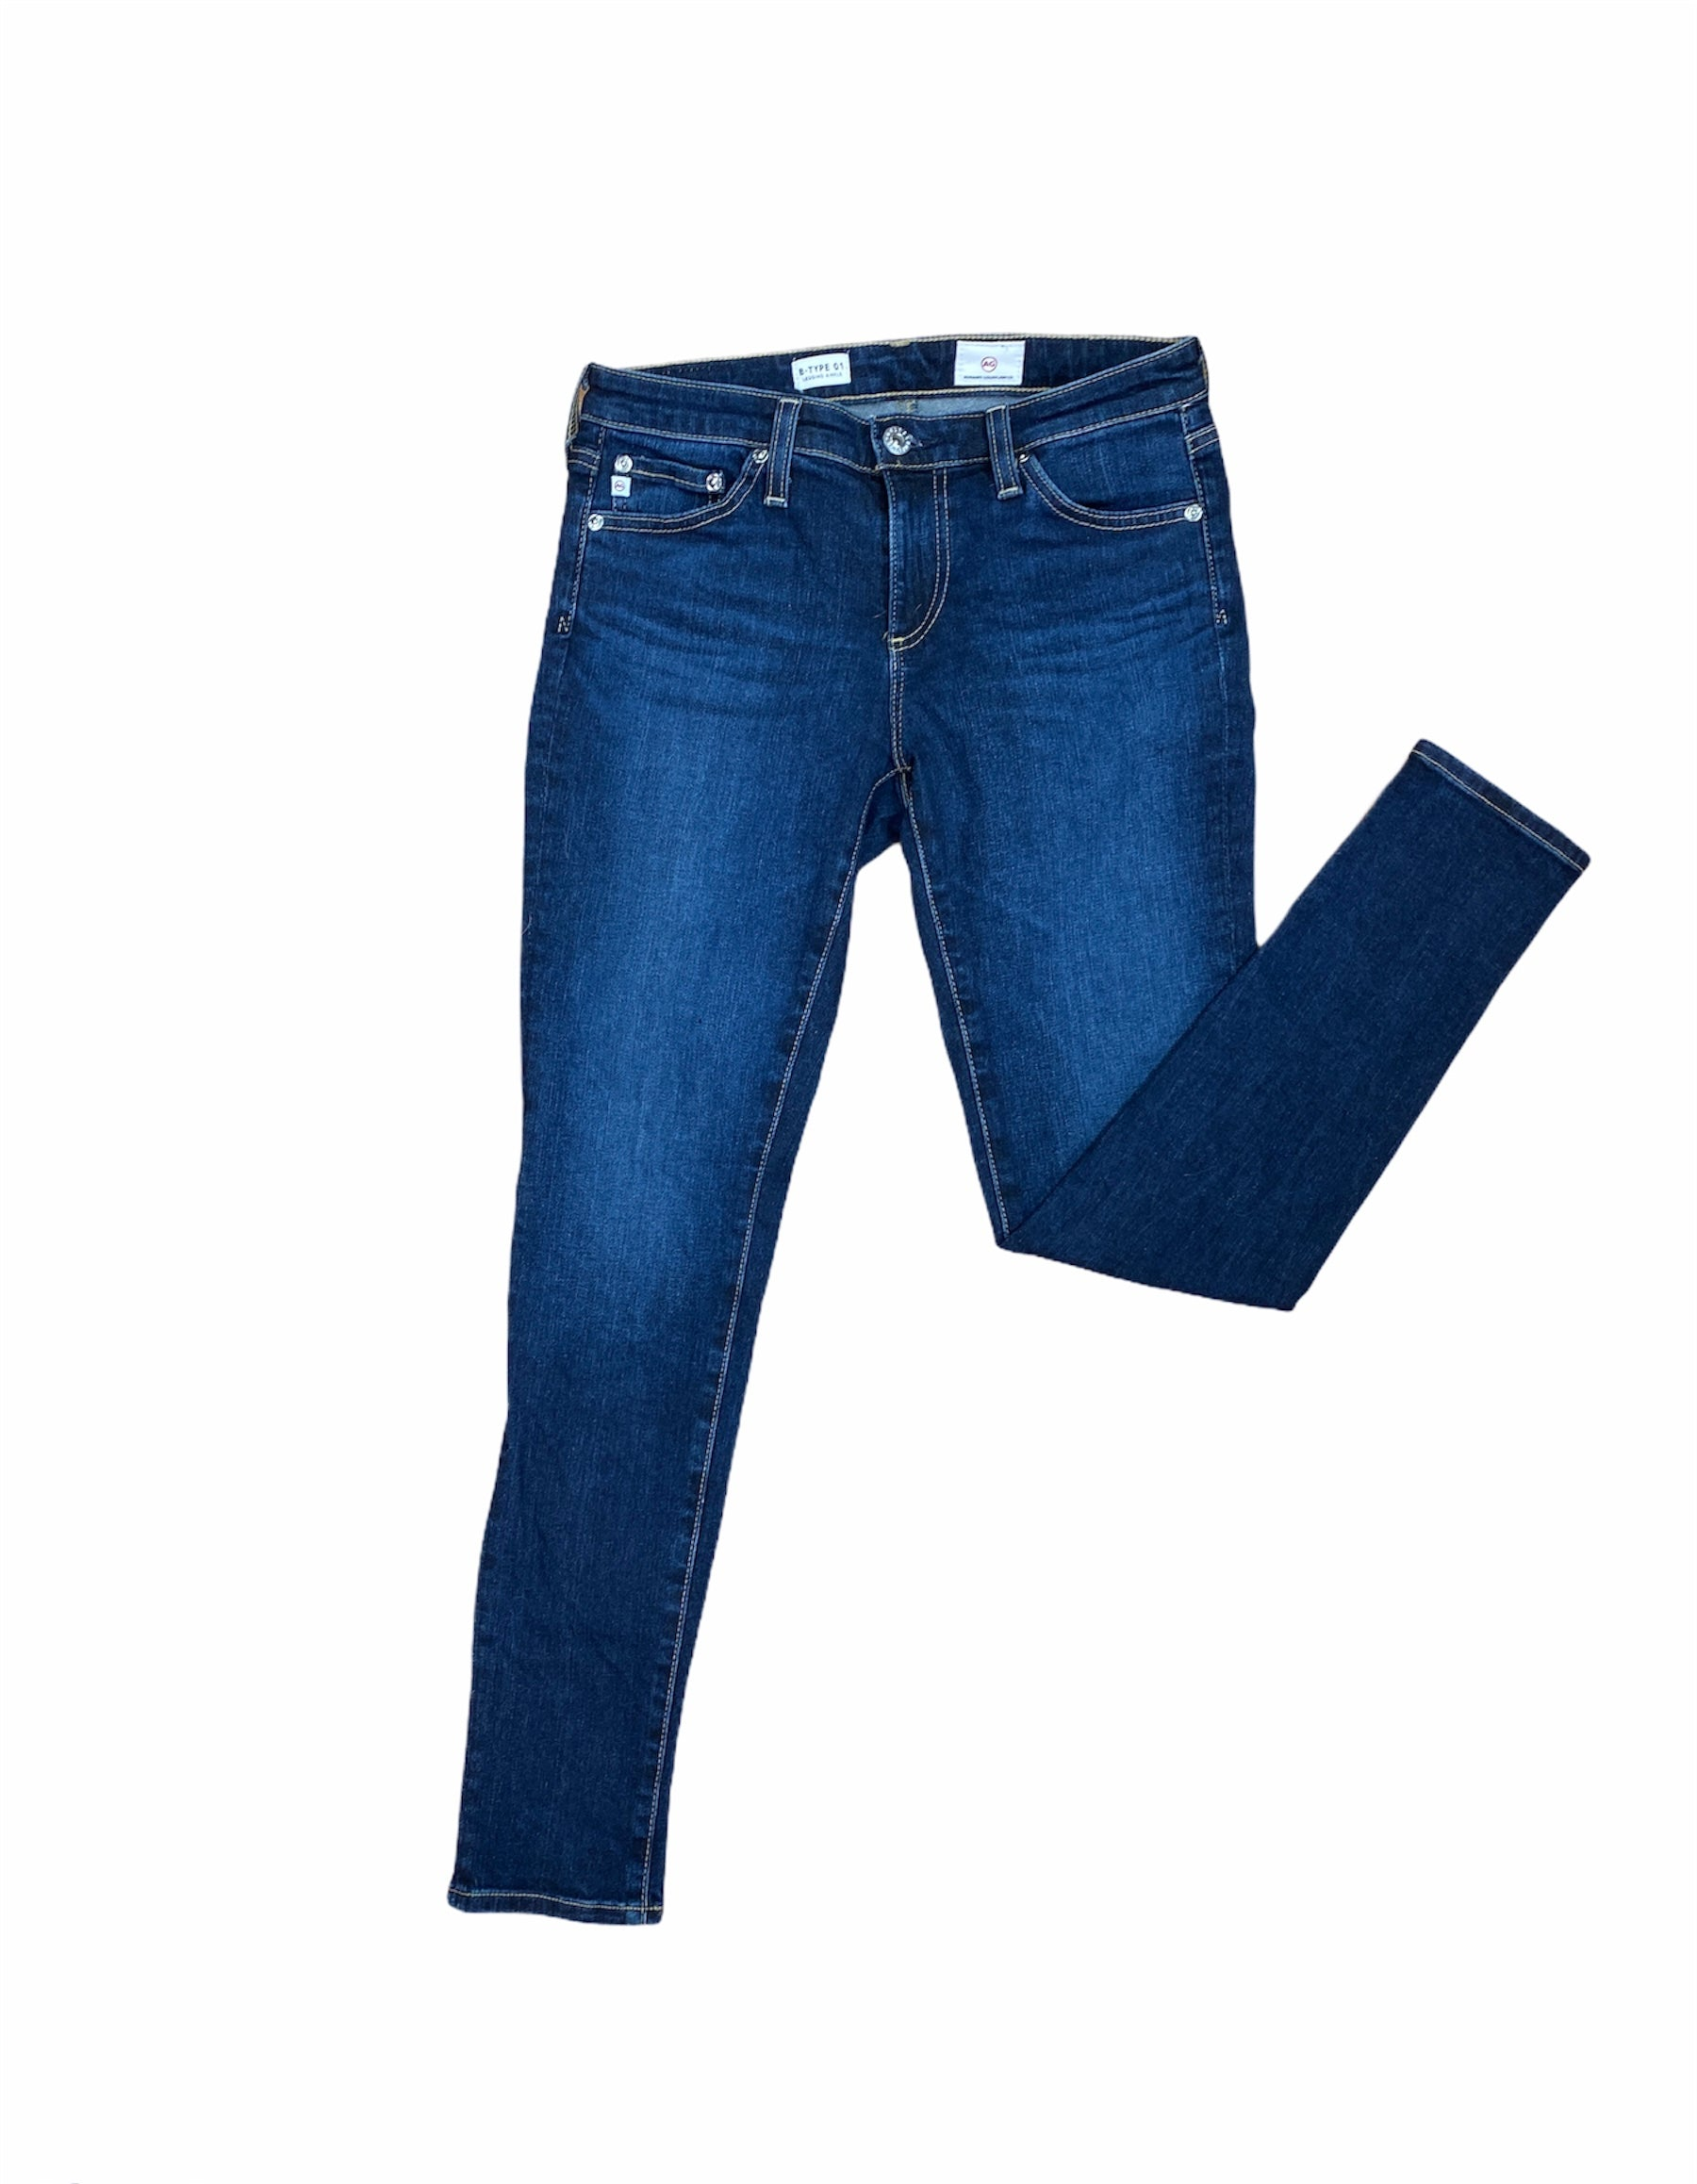 Primary Photo - BRAND: ADRIANO GOLDSCHMIED <BR>STYLE: JEANS DESIGNER <BR>COLOR: DENIM <BR>SIZE: 0 <BR>SKU: 223-22343-19855